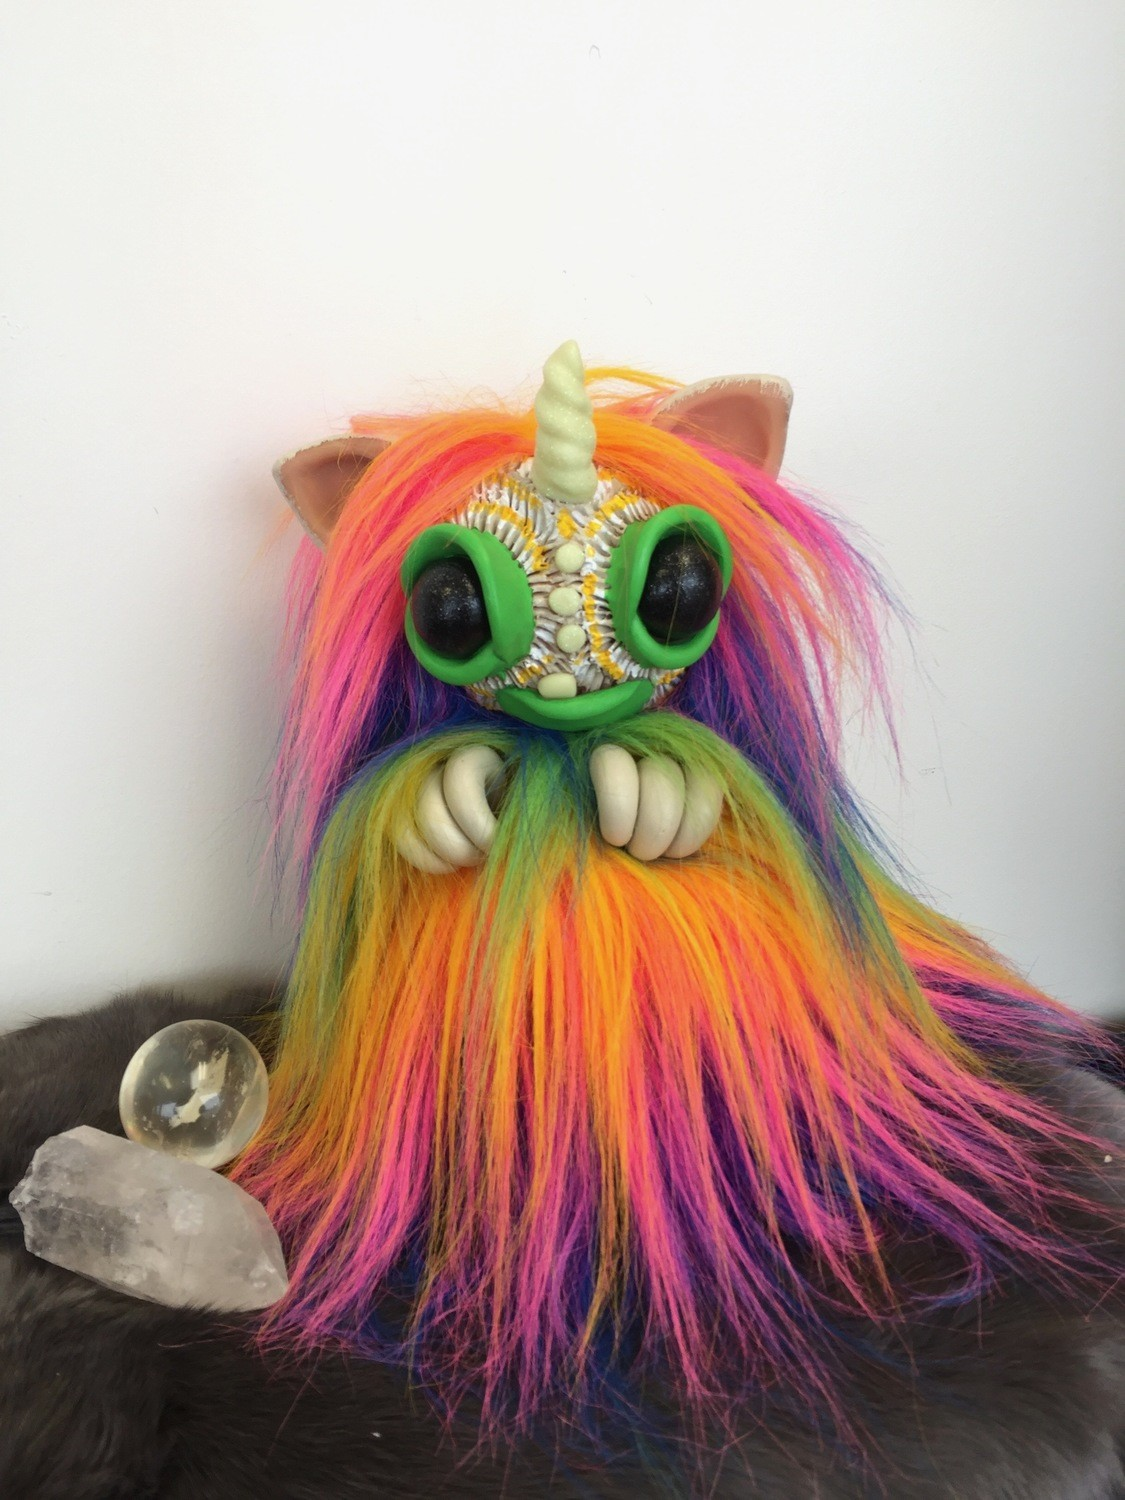 Rainbow Unicorn Haggling 1